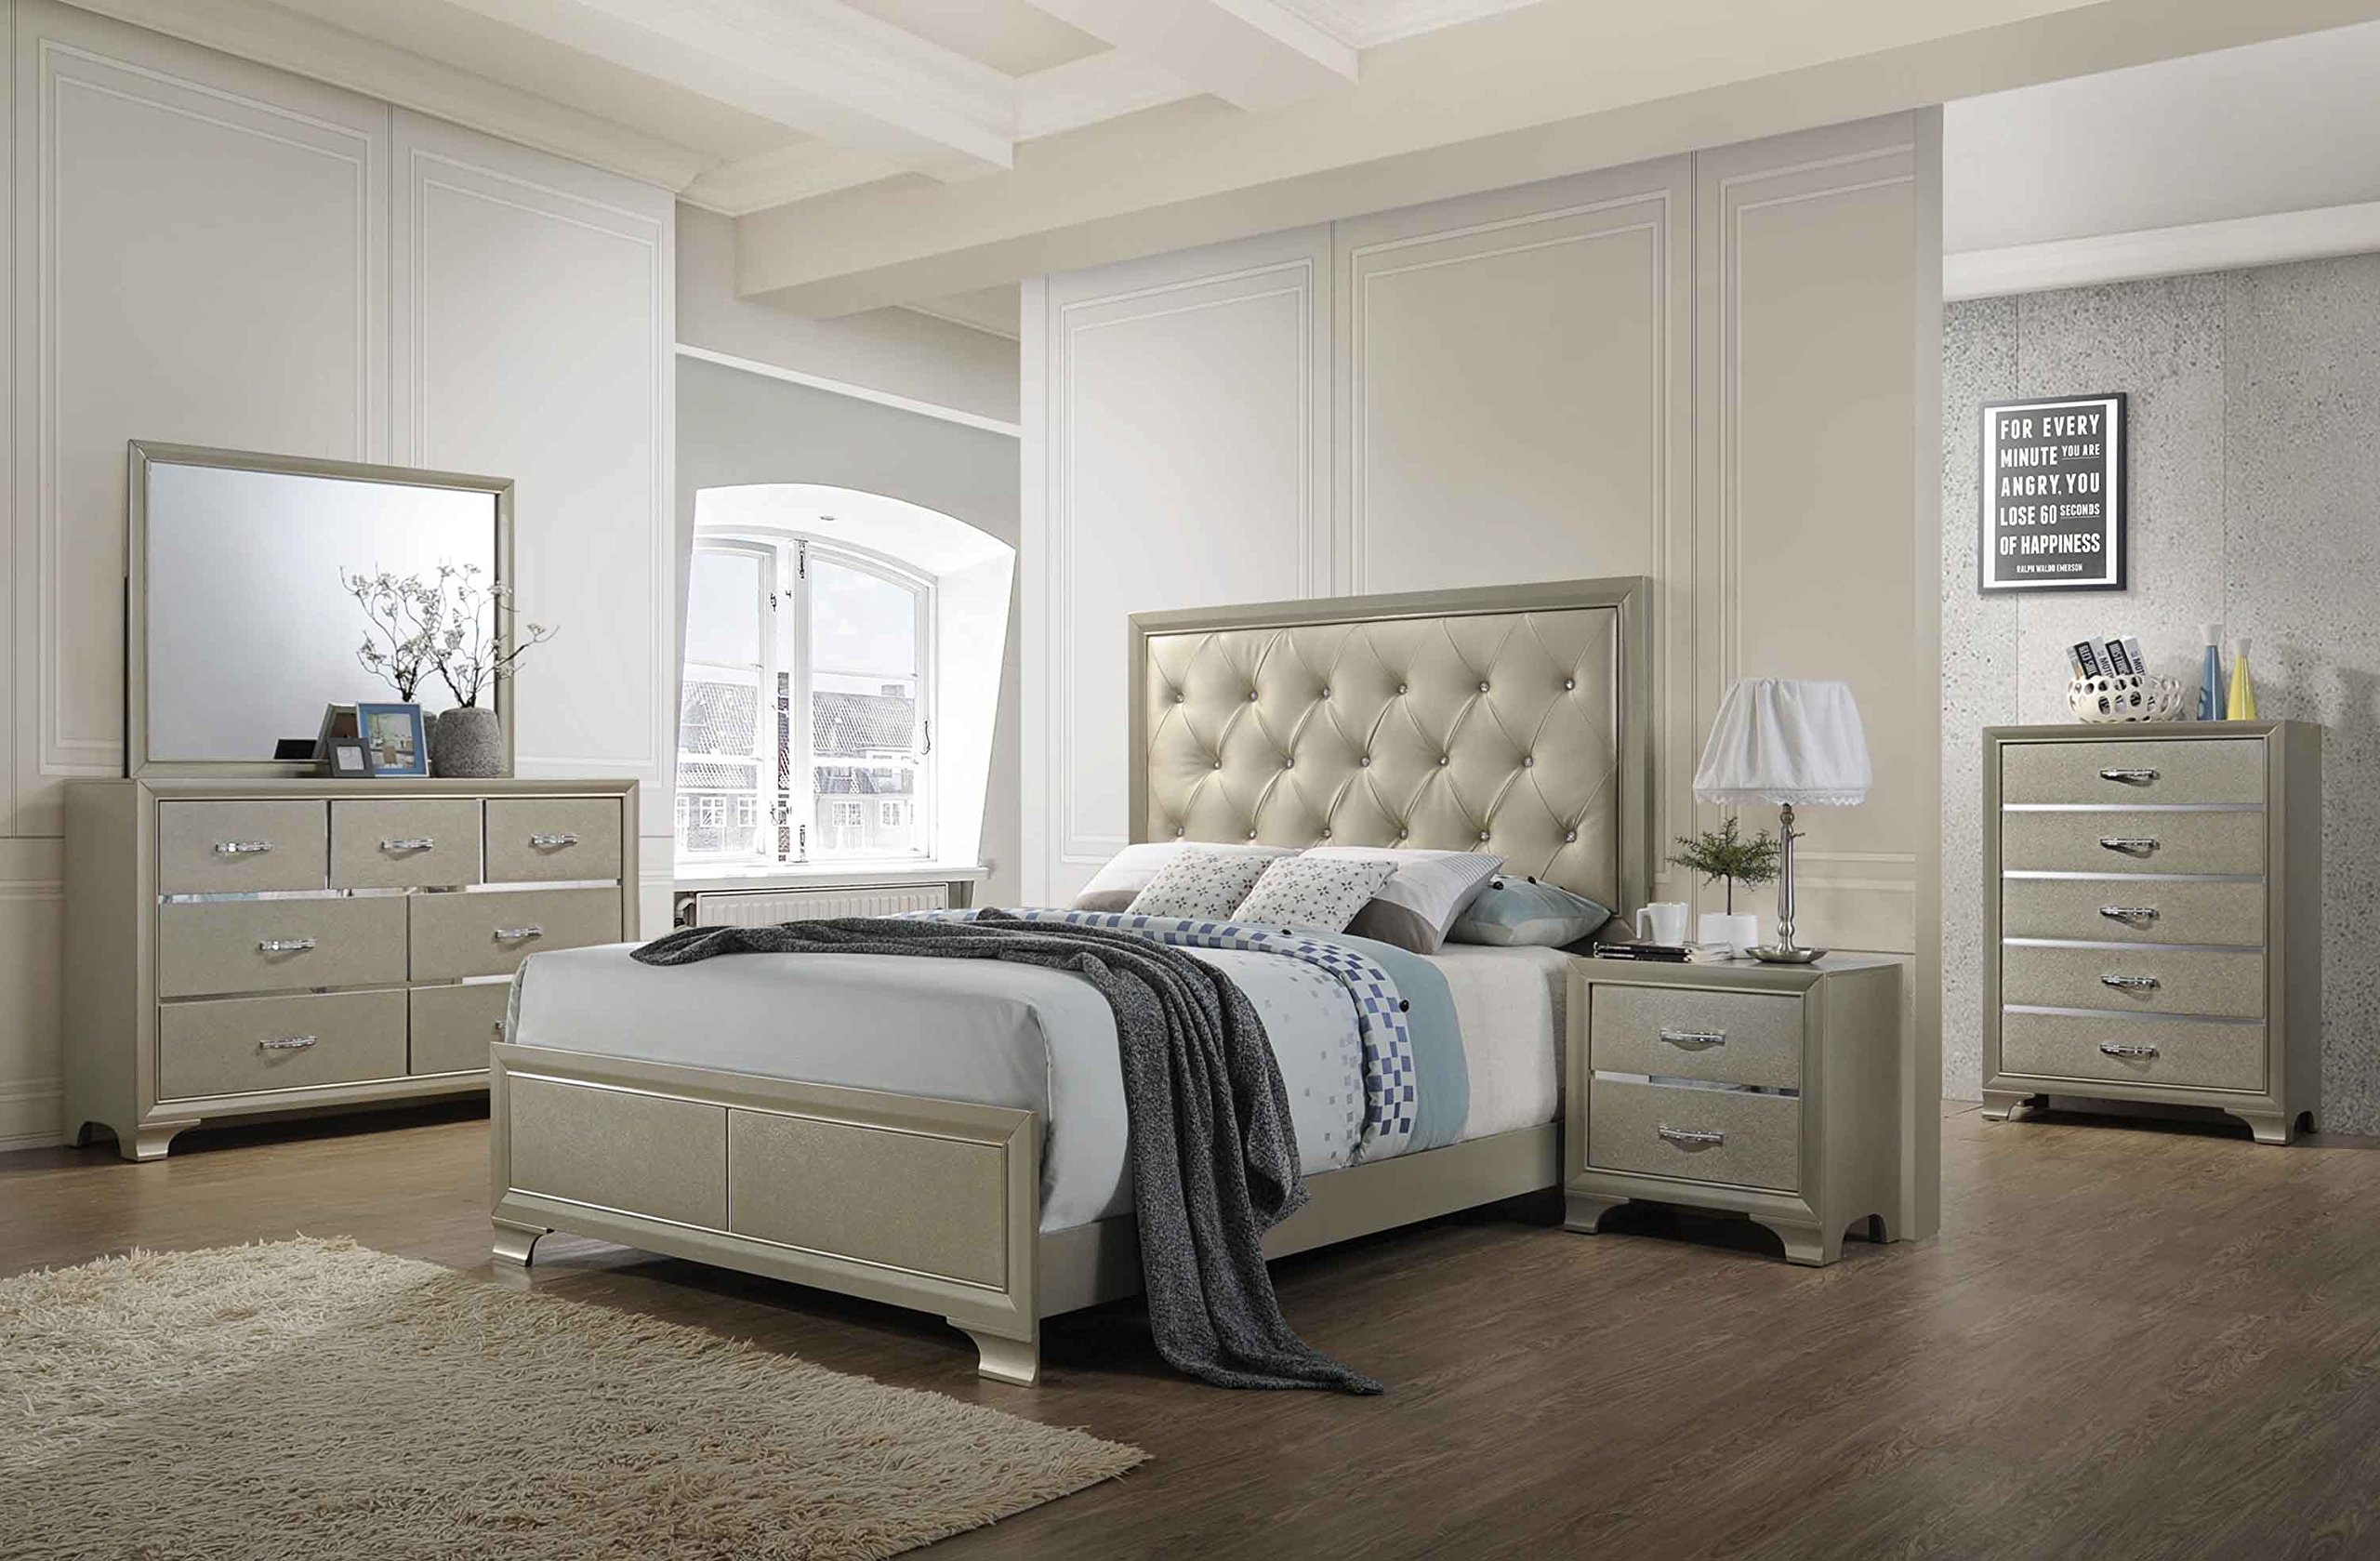 Kings Brand Furniture - 6-Piece Champagne Finish with Upholstered Headboard King Size Bedroom Set. Bed, Dresser, Mirror, Chest & 2 Night Stands by Kings Brand Furniture